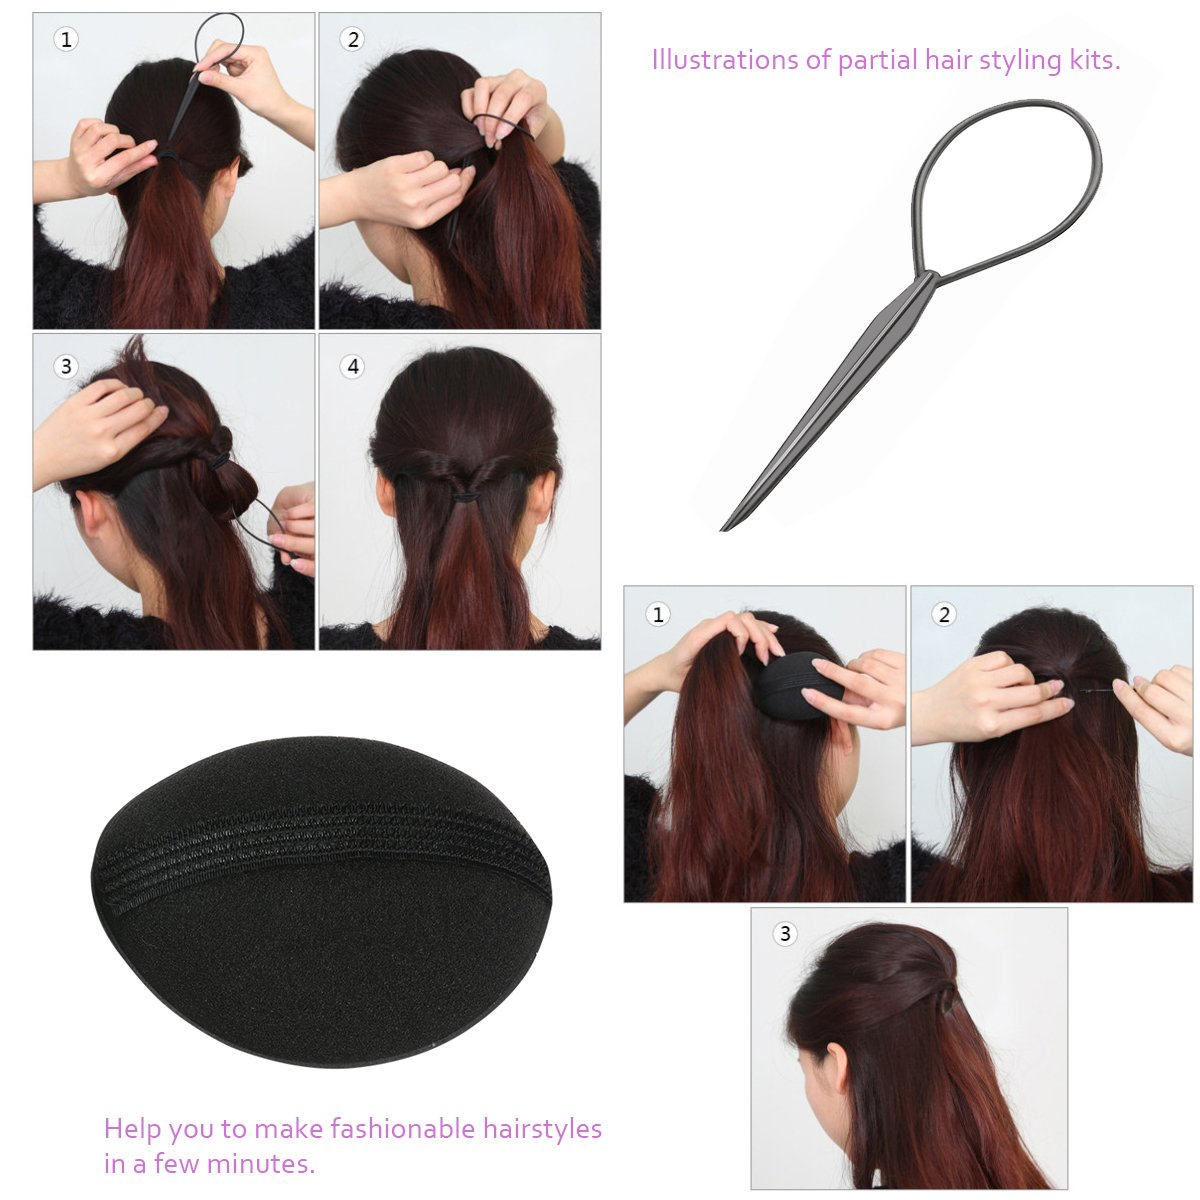 Amazon.com: PIXNOR Hair Styling Accessories Kit Set for DIY: Health ...